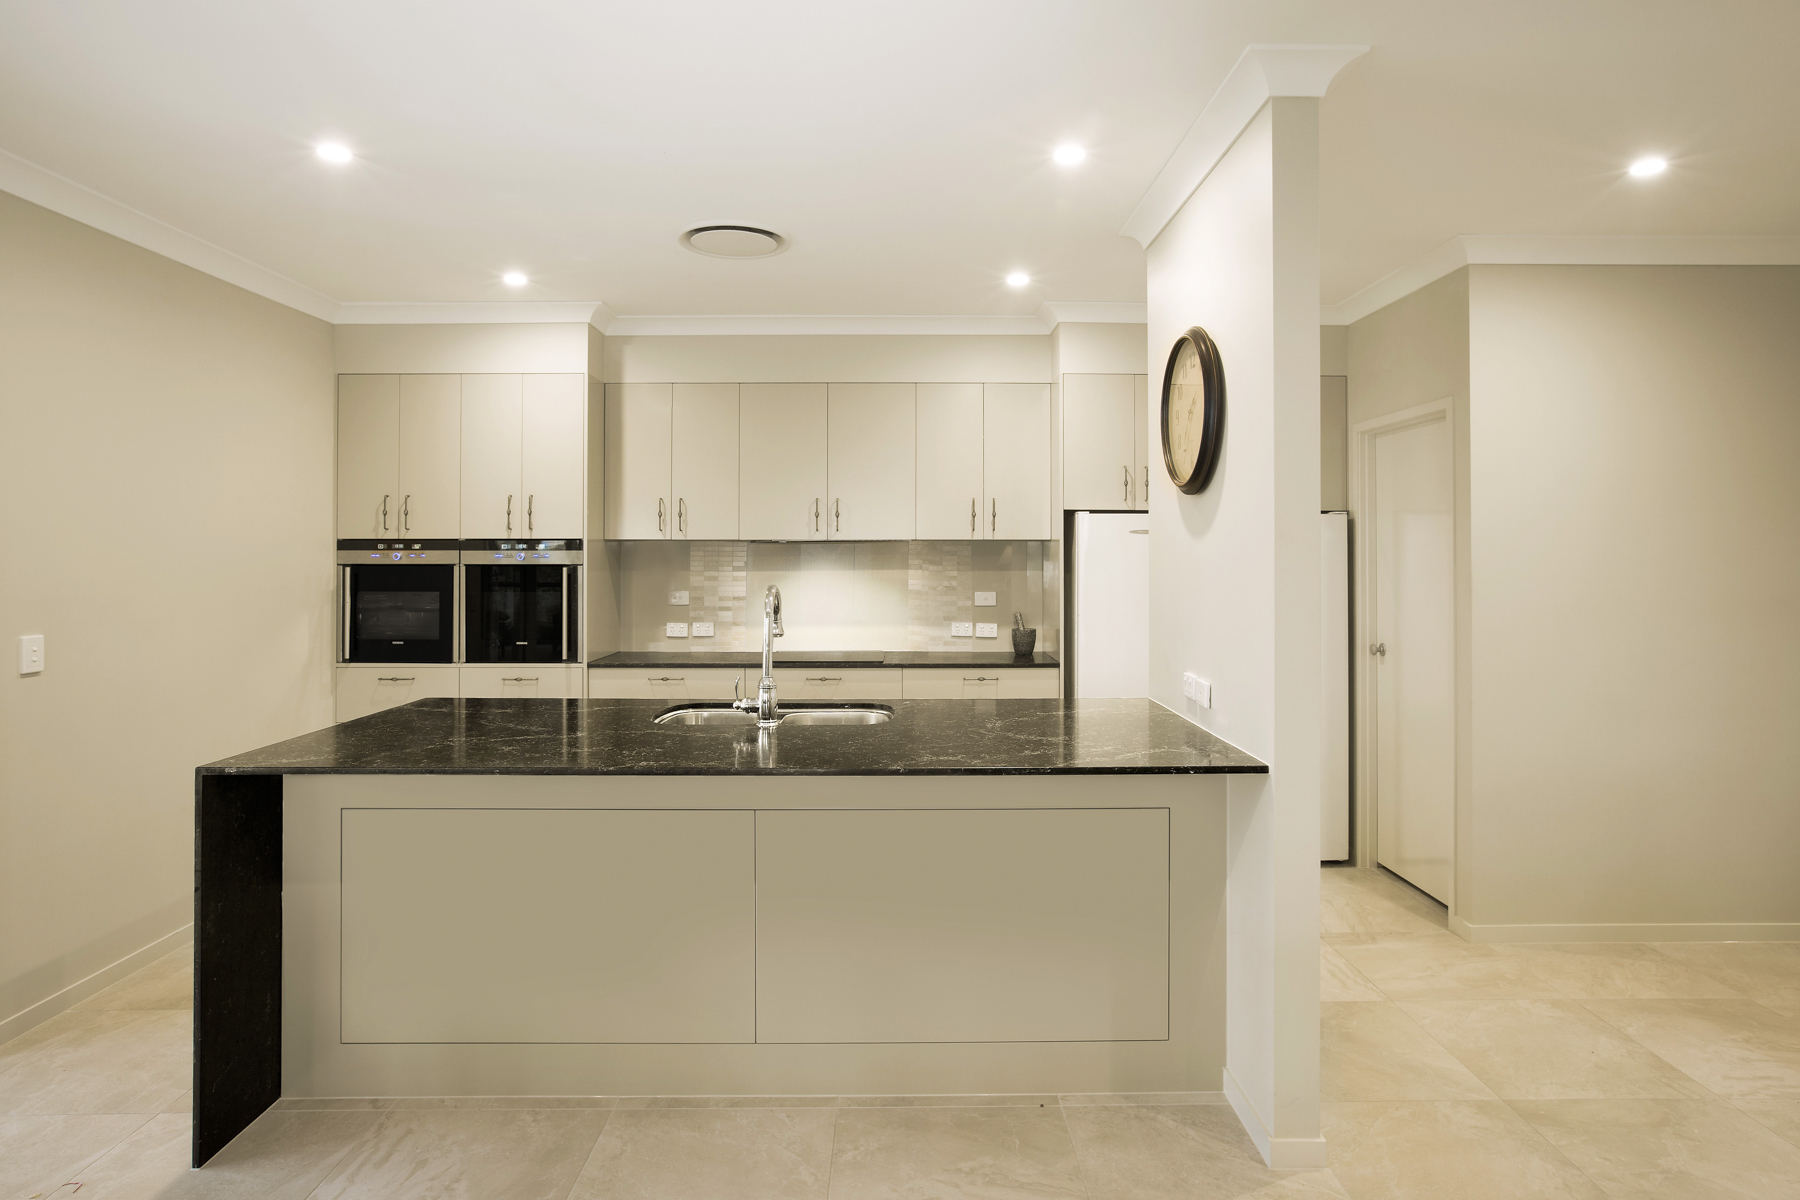 Kitchen cabinets makers - Contemporary Modern Kitchen Design Brisbane With Vanilla